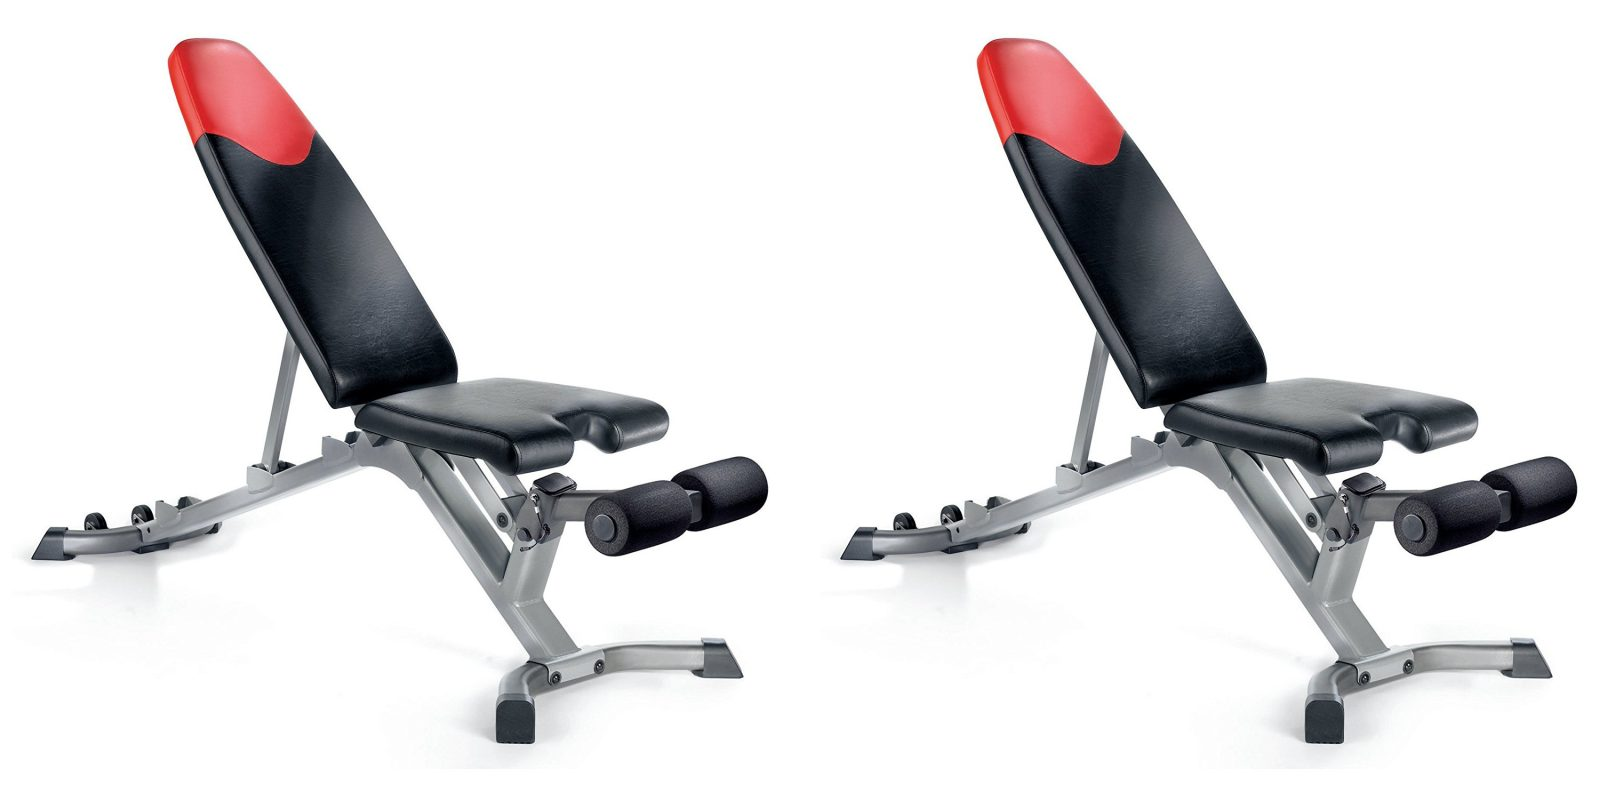 Tremendous Add The Bowflex 3 1 Adjustable Bench To Your Home Gym At 99 Ocoug Best Dining Table And Chair Ideas Images Ocougorg